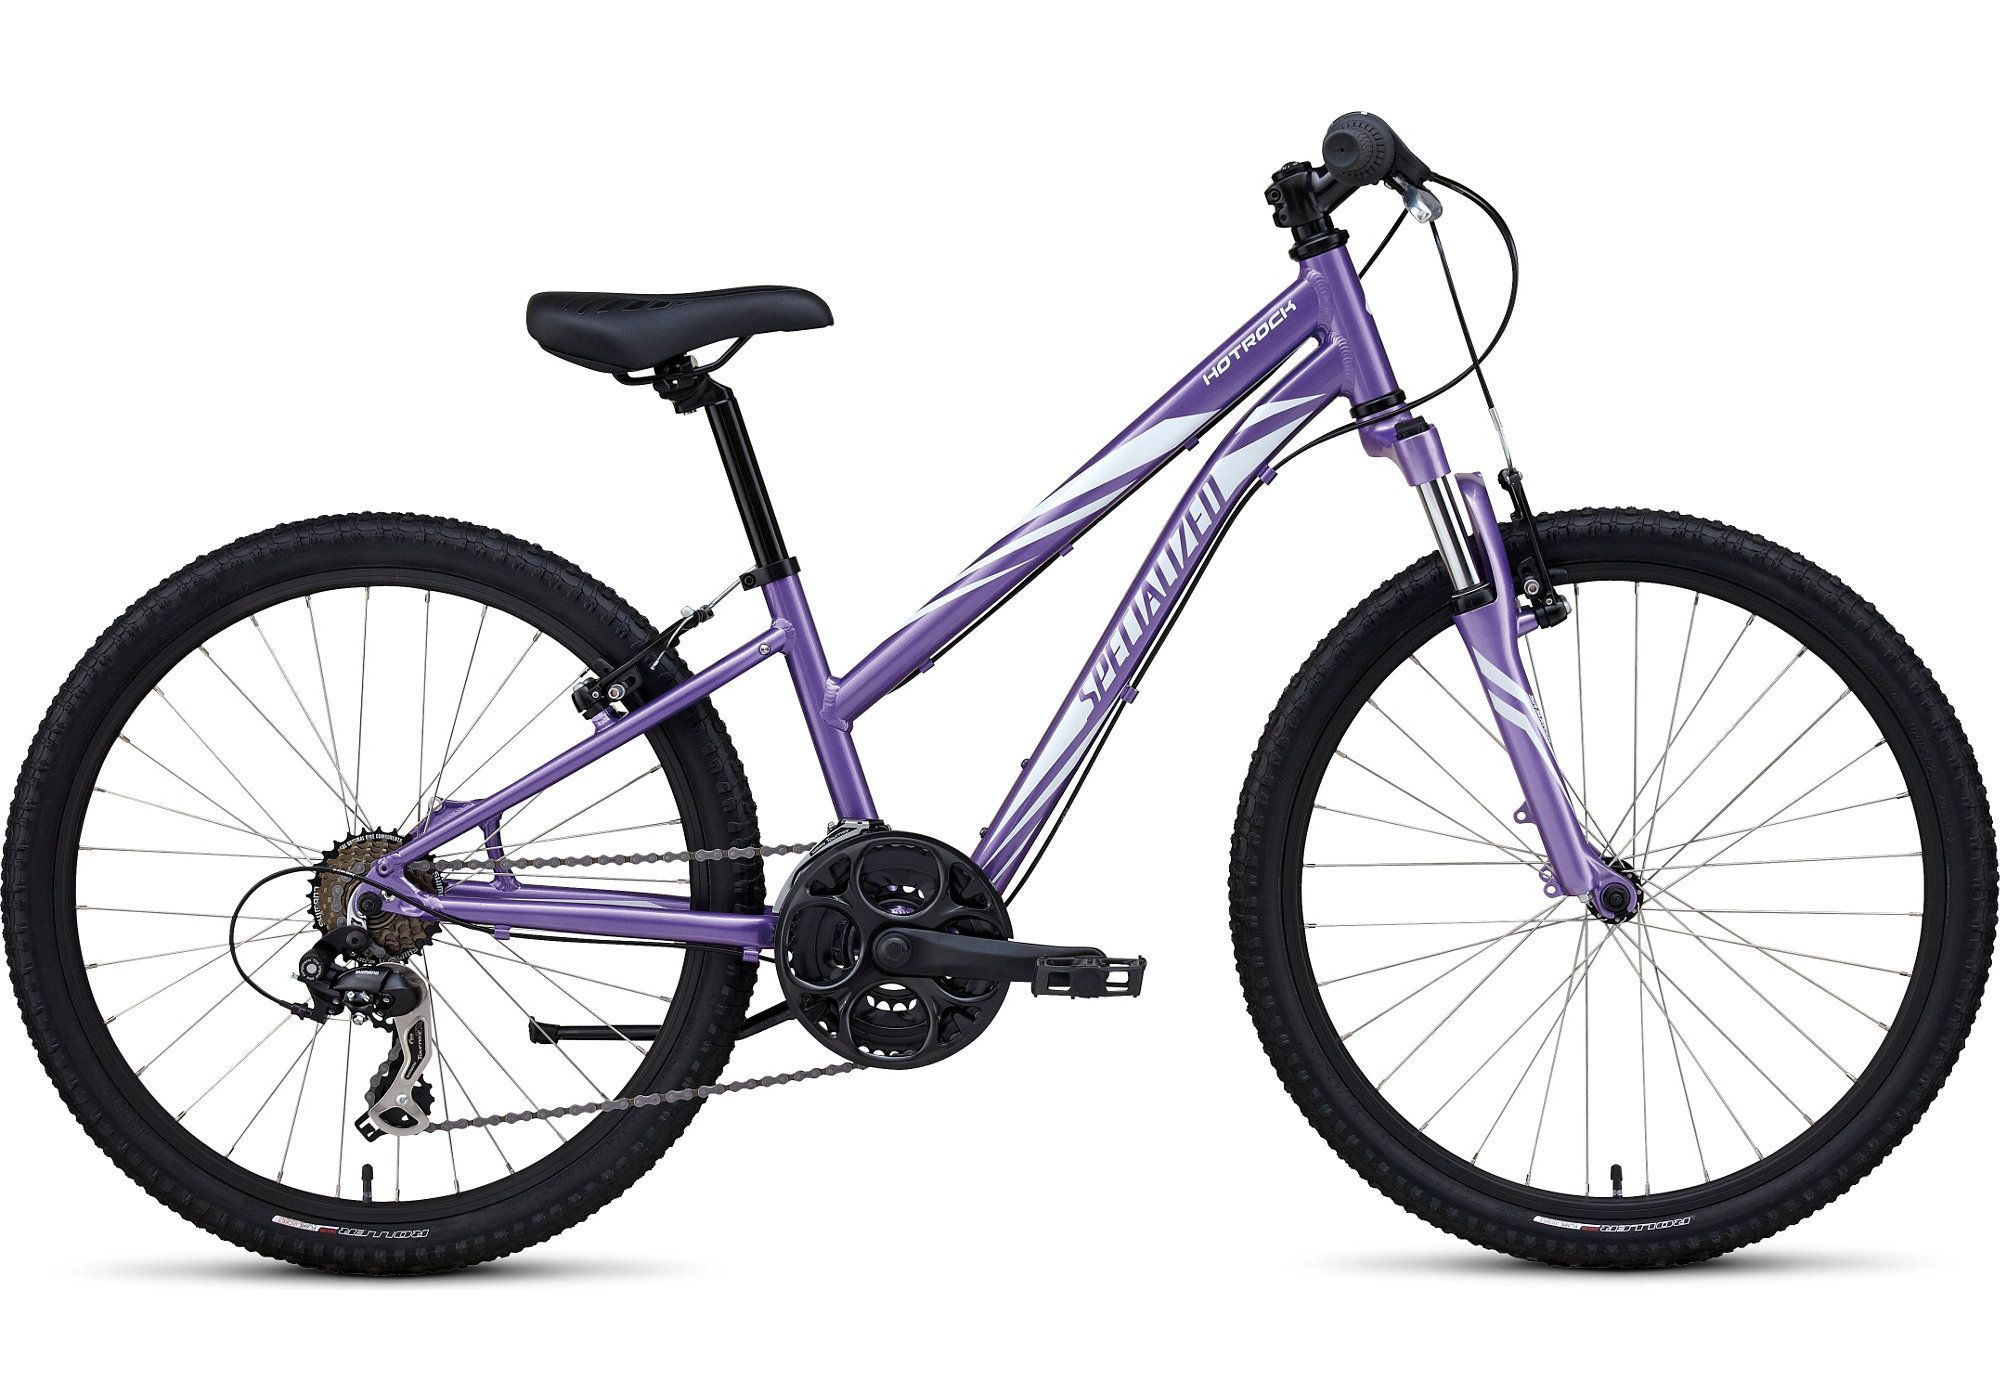 Велосипед Specialized Hotrock 24 21 speed girl Int 2016 велосипед specialized hotrock 24 21 sp girls int 2016